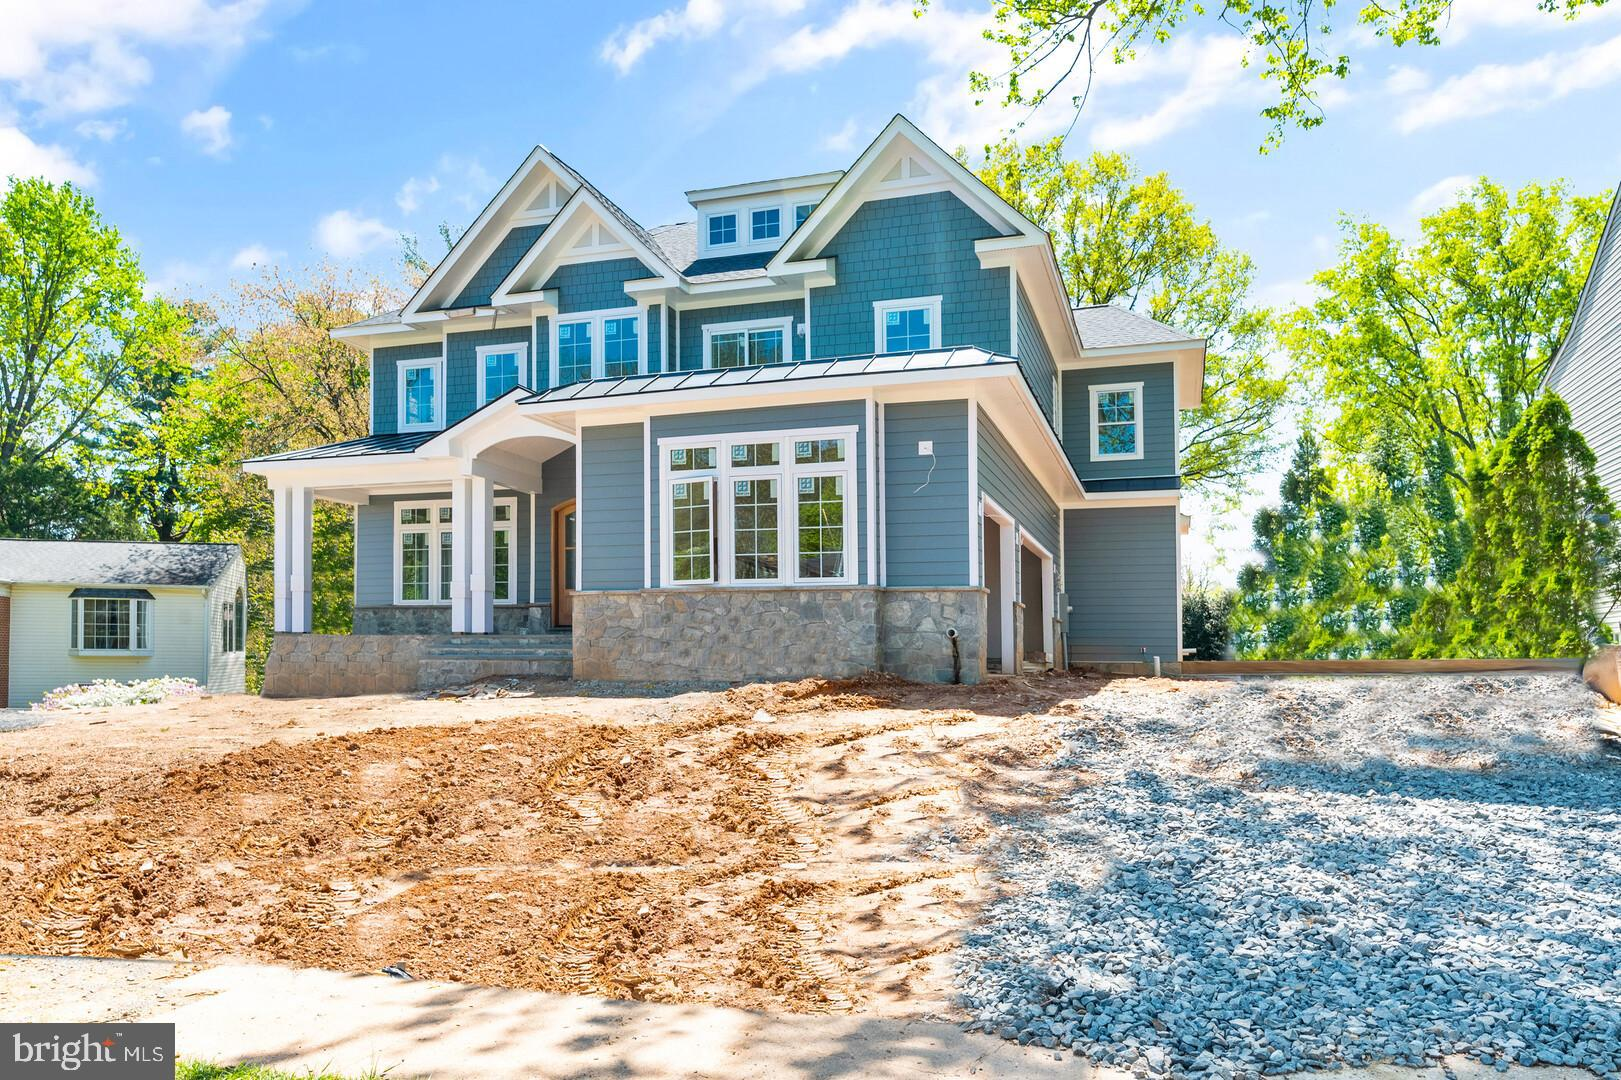 Welcome to this just-built, stunning, 7 bedroom, 7 1/2 bath home featuring a gourmet kitchen, wood f